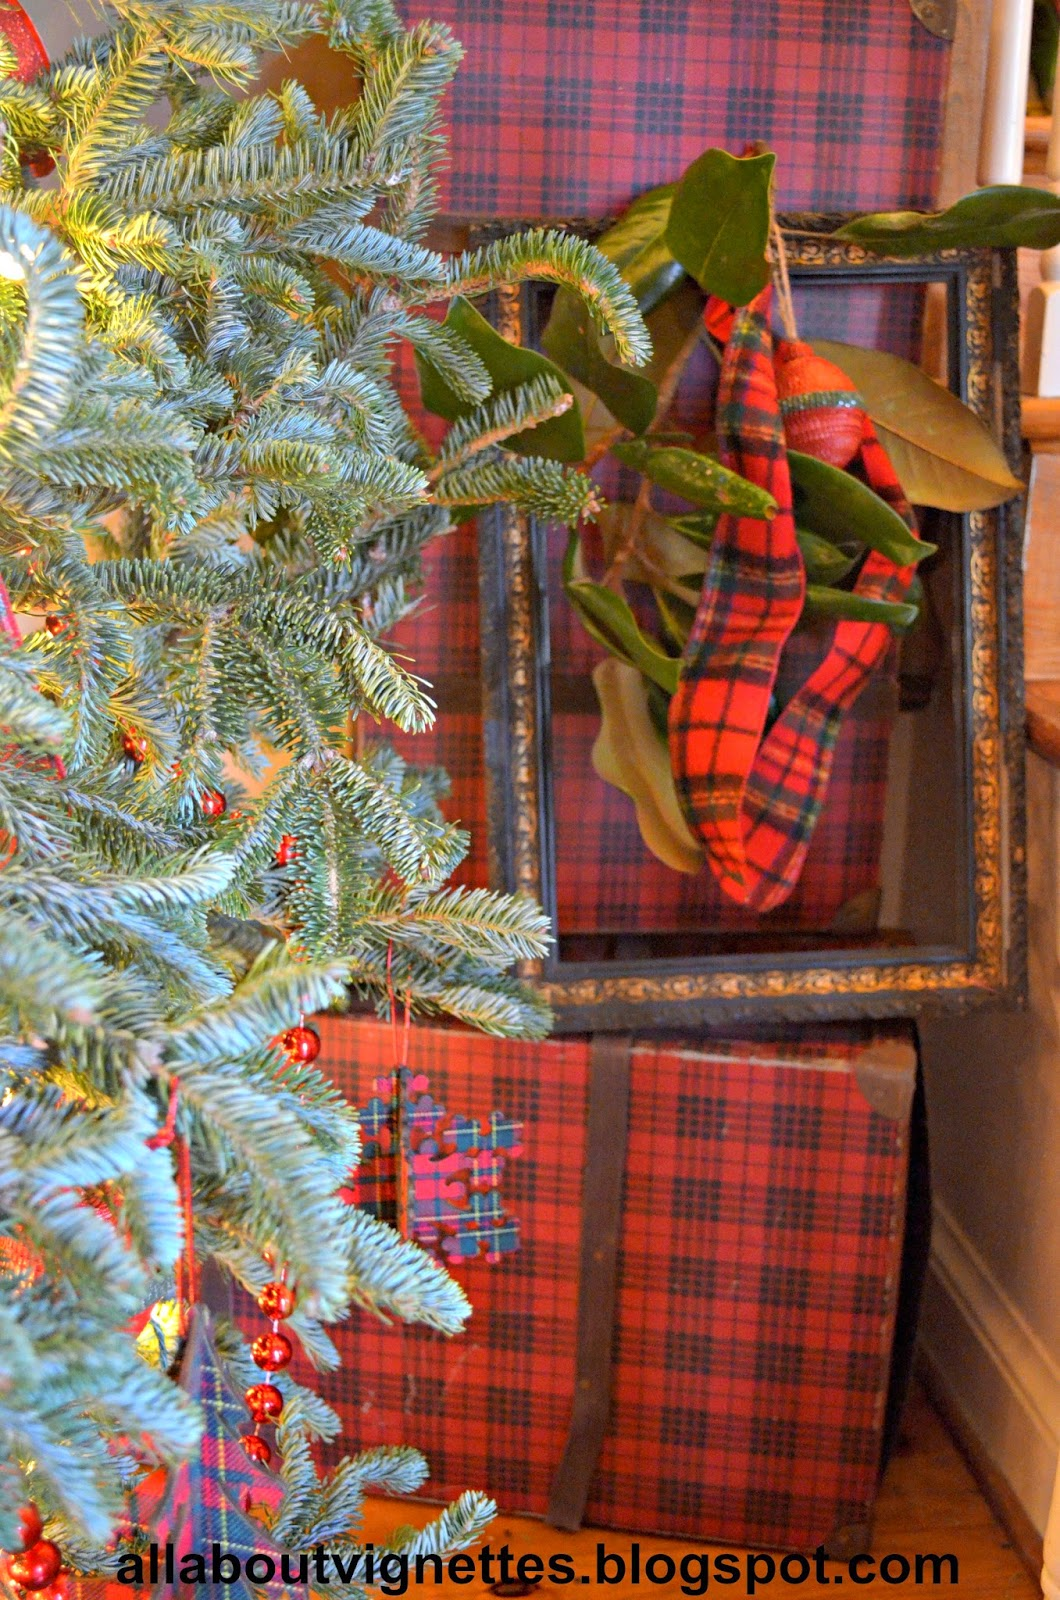 All About Vignettes 2014 Holiday Christmas Tree In